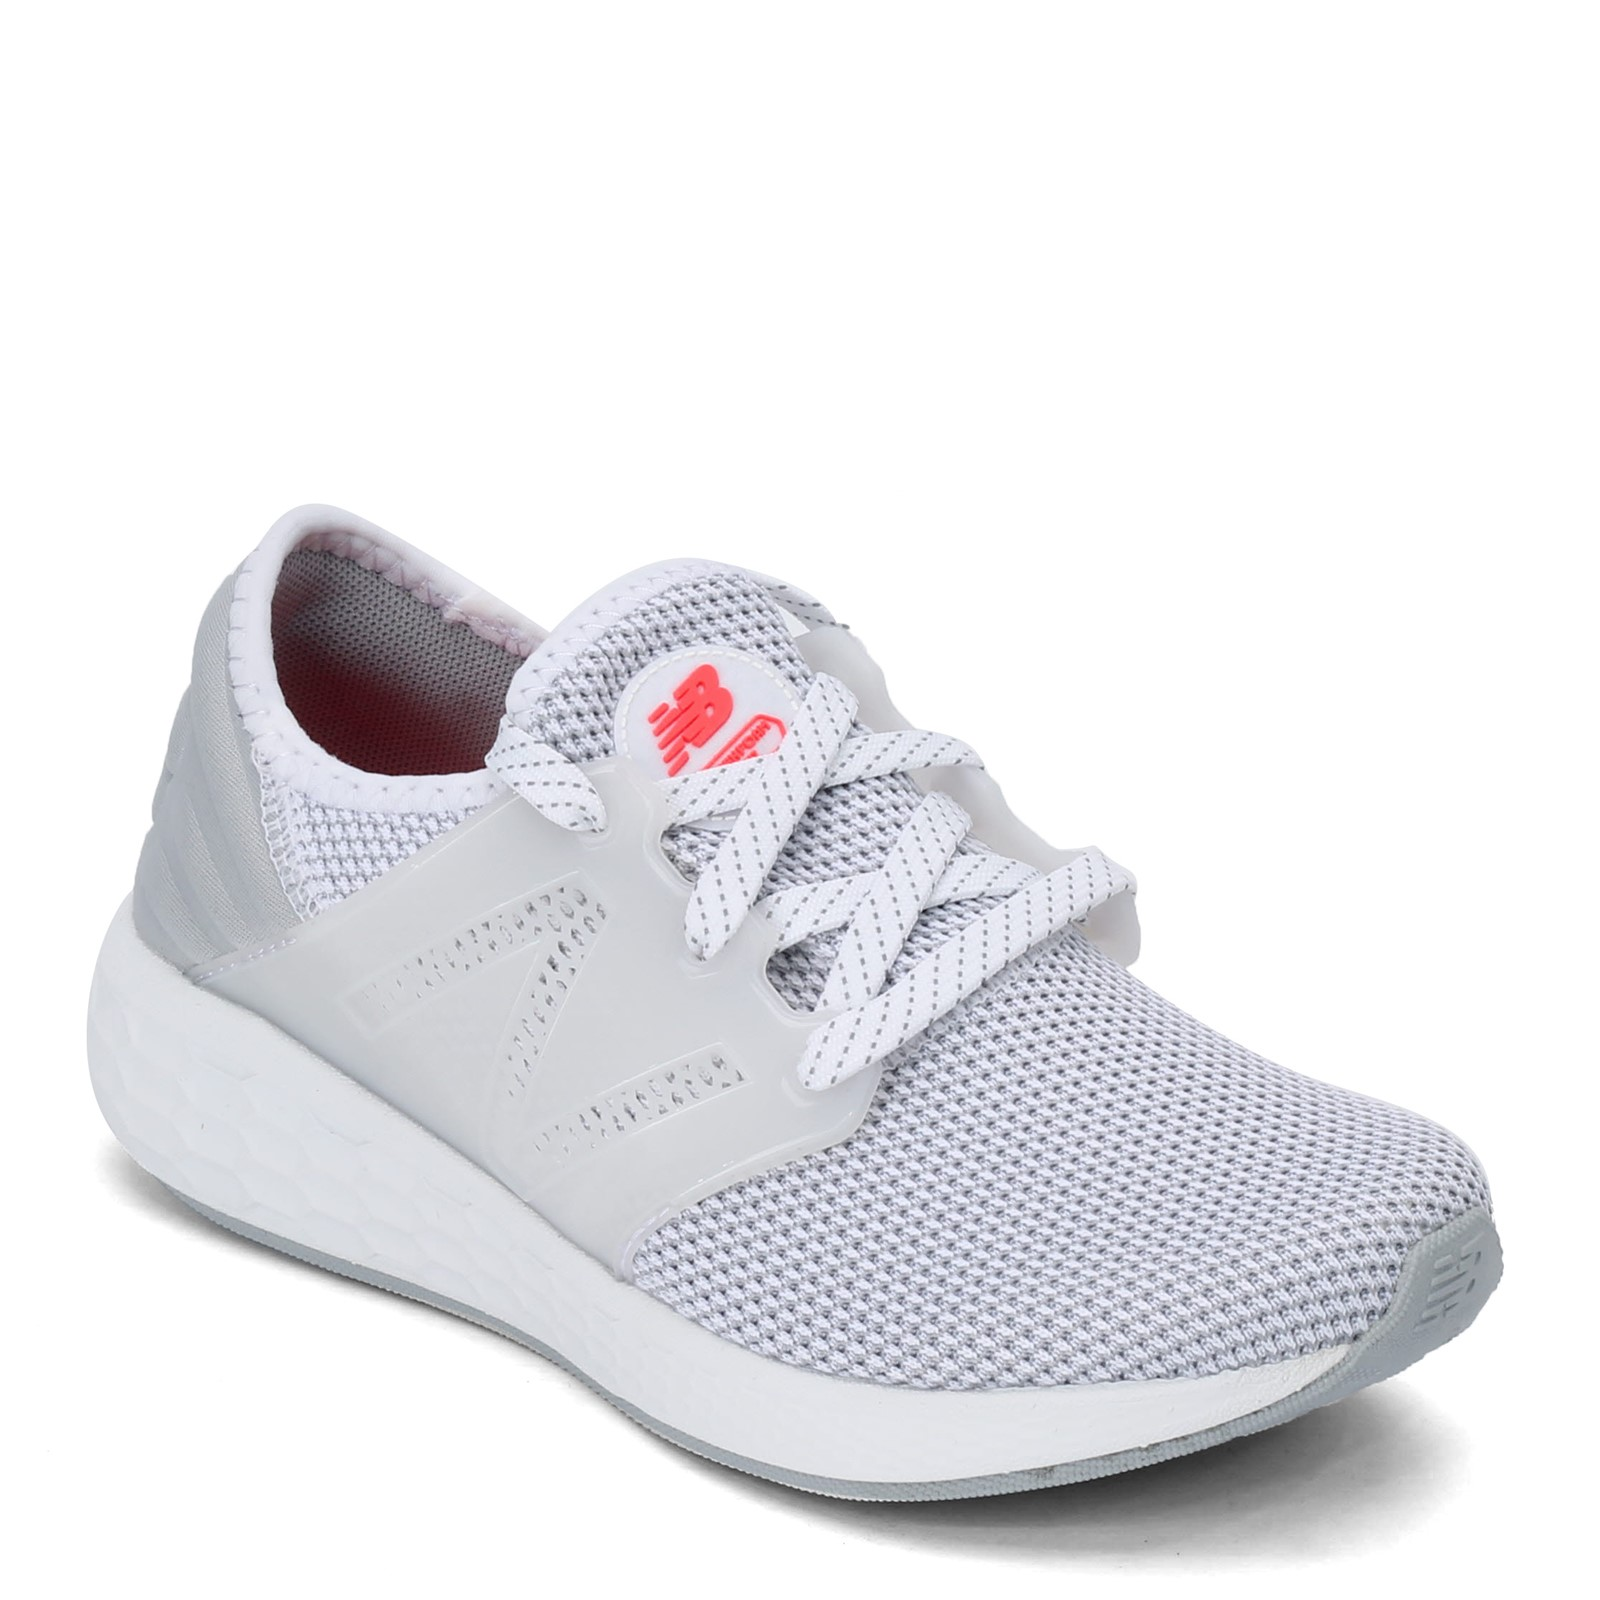 Women's New Balance, Cruzv2 Athletic Sneaker